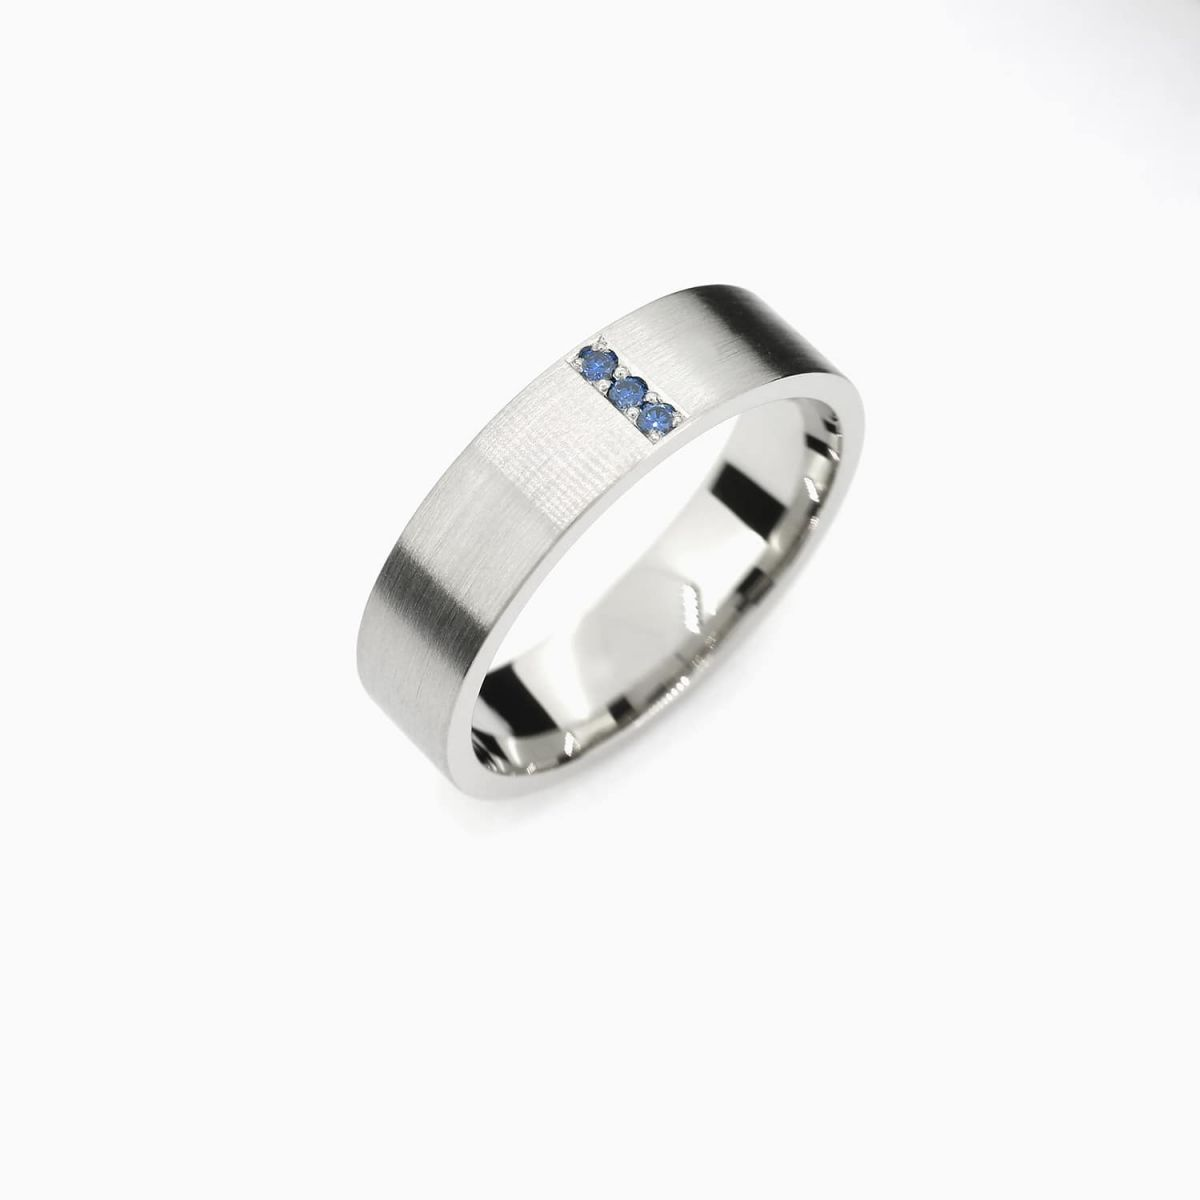 Matte Line Ring With Blue Sapphires In Palladium Palladium Wedding Band Sapphire Wedding Band Rings For Men